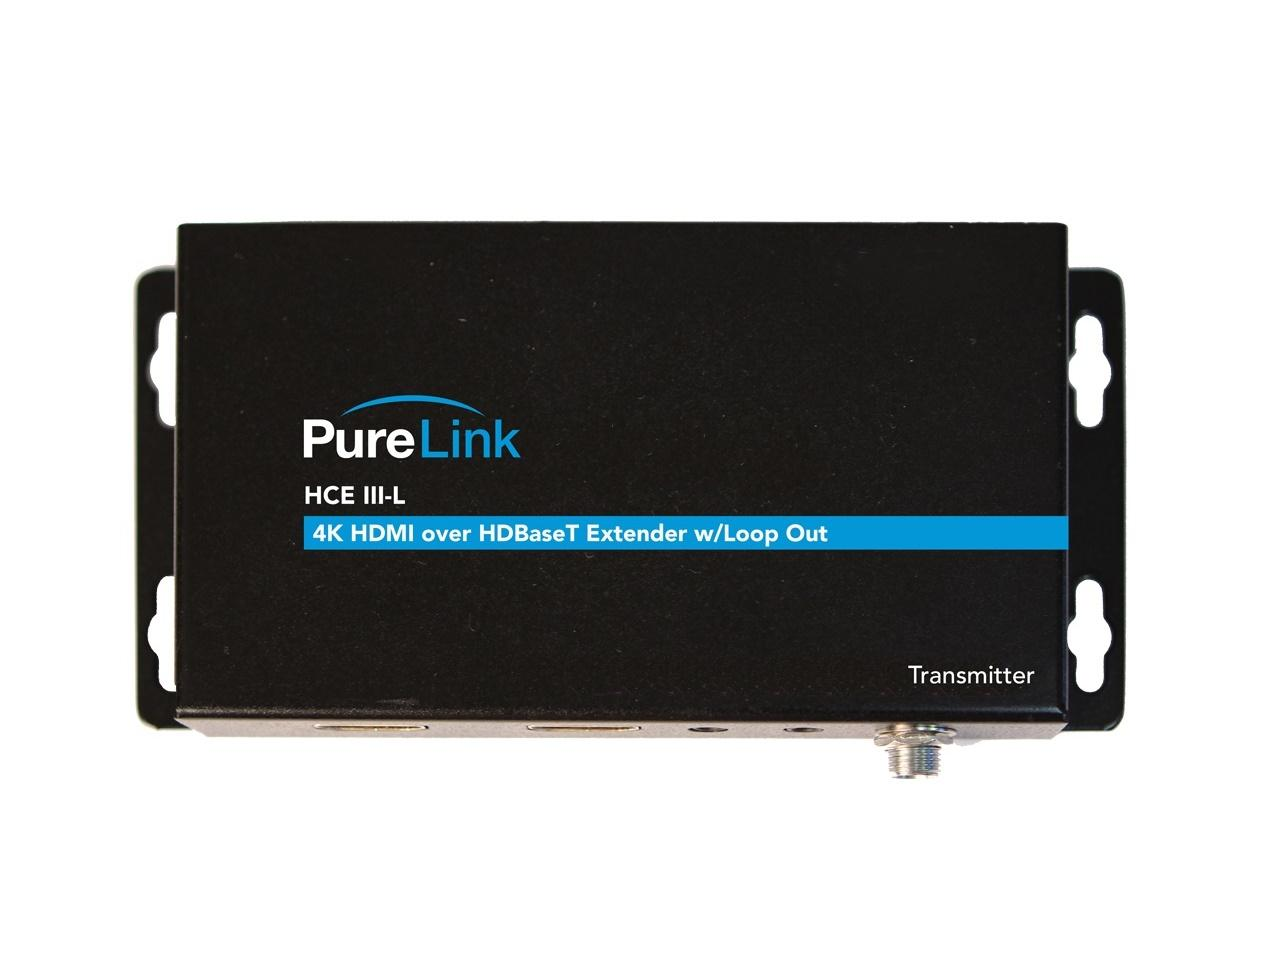 PureLink HCE III-L Tx HDTools 4K HDMI/HDR/IR and RS-232/Bi-directional PoE over HDBaseT Extender (Transmitter)